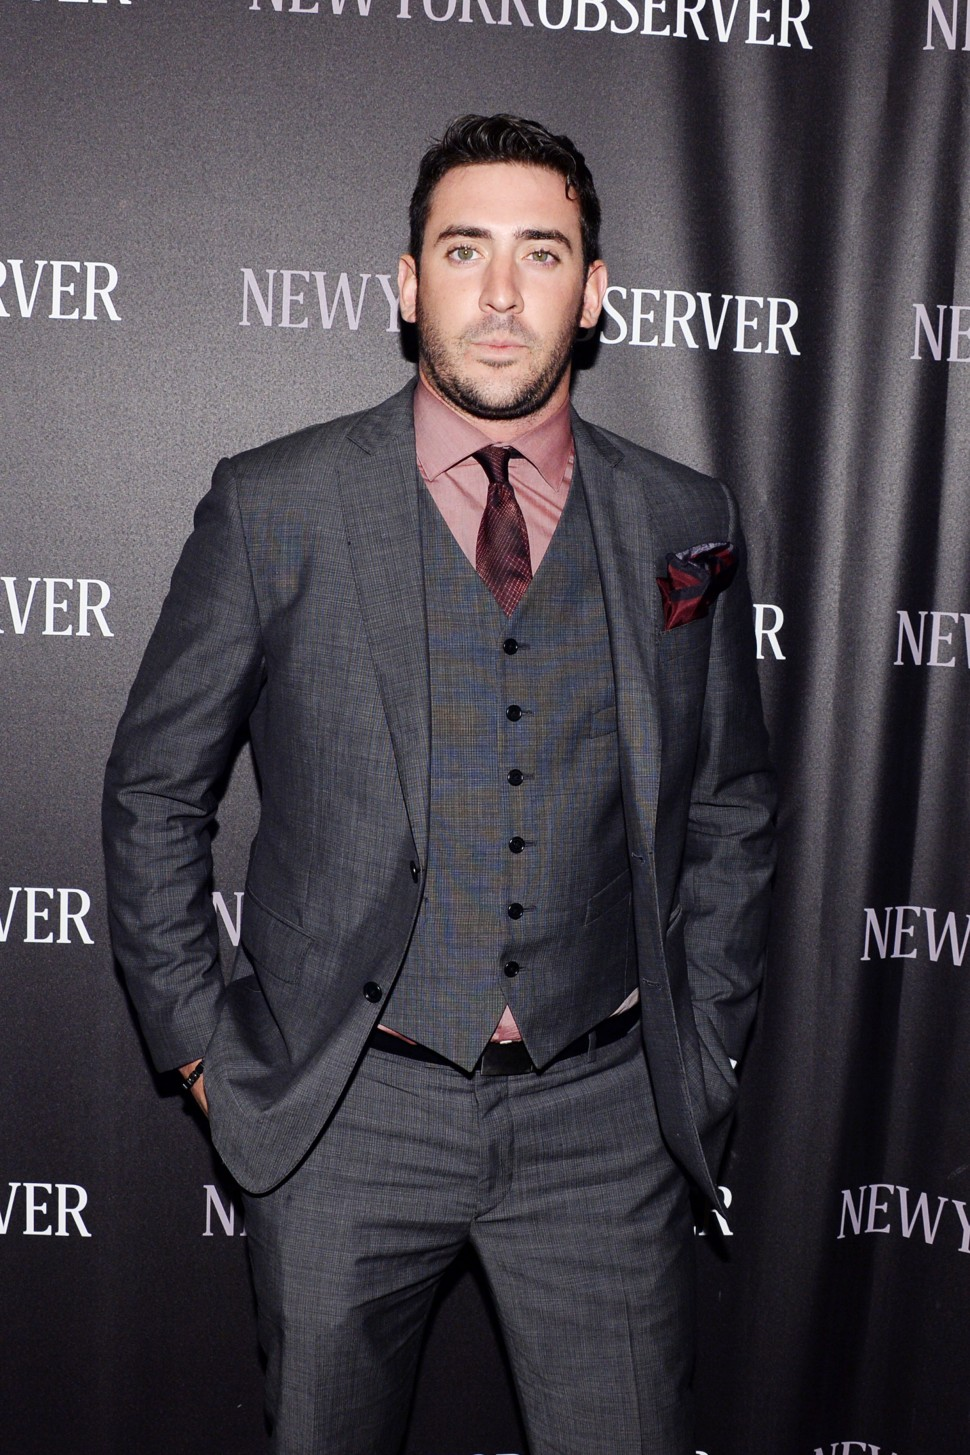 Matt Harvey attends The New York Observer's New Look Hosted by Jared Kushner and Joseph Meyer (Photo: Patrick McMullan)